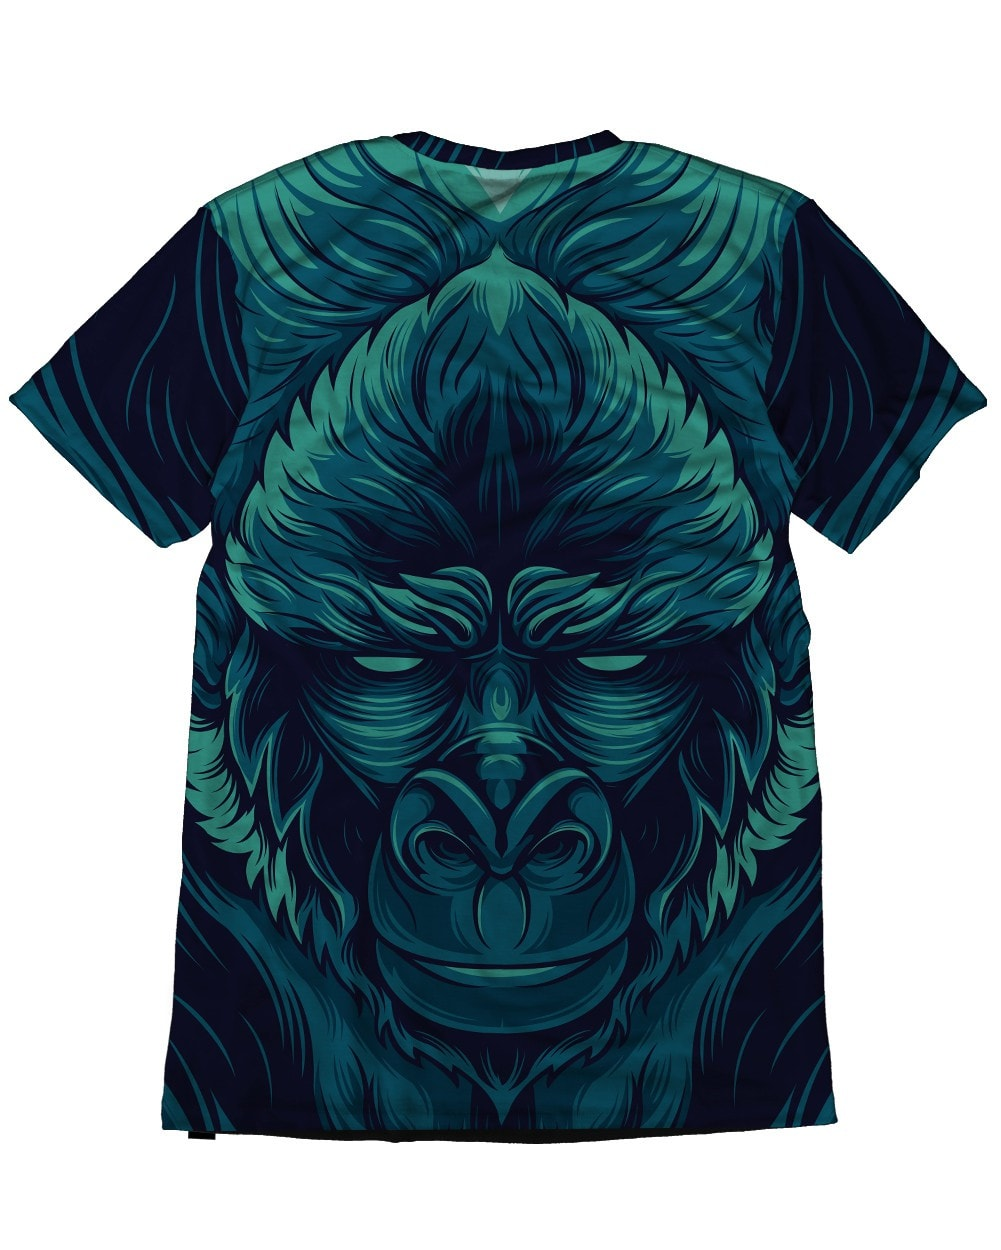 Kong Men's All Over Print Tee